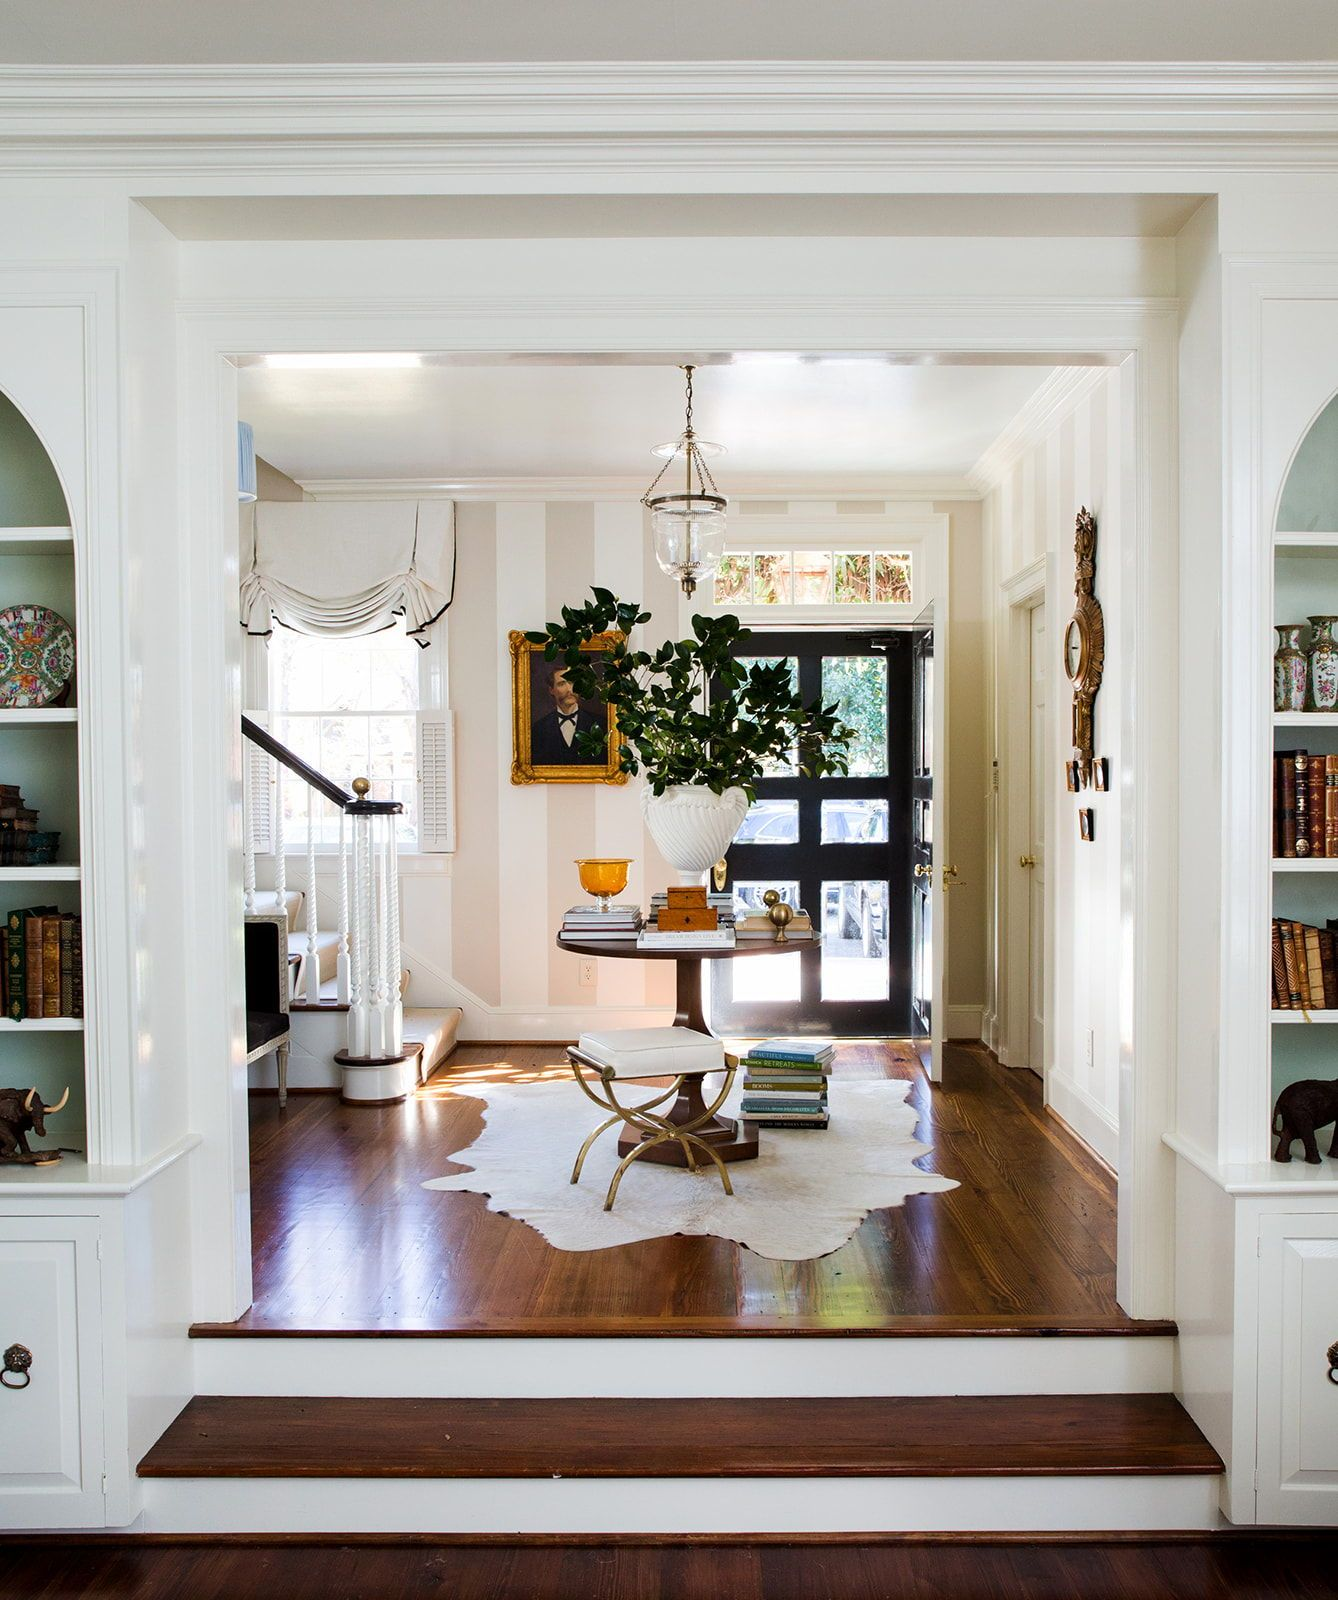 Beautiful Entrance Foyer By Anne Wagoner Interiors White Plaster Urn Filled With Greenery On A Center Table Annewagonerin Home Decor Classic Home Decor Home